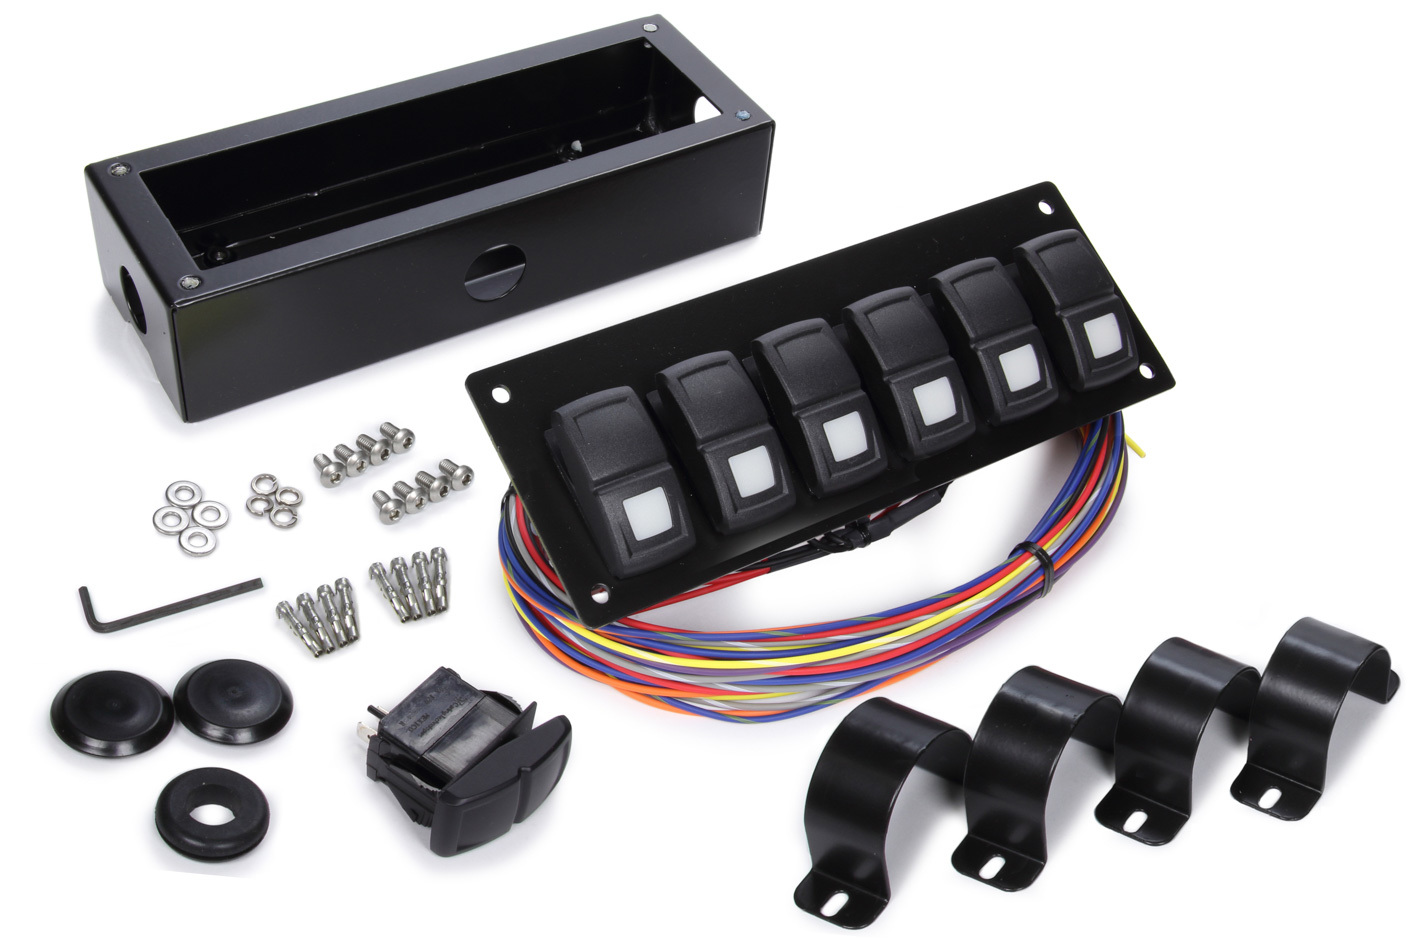 Painless Wiring 58105 Switch Panel, Track Rocker, 1-5/8 or 1-3/4 In Roll Bar Mount, 6 Rockers, Installation Hardware / Wiring Harness Included, Indicator Lights, Black, Painless Track Rocker System, Kit